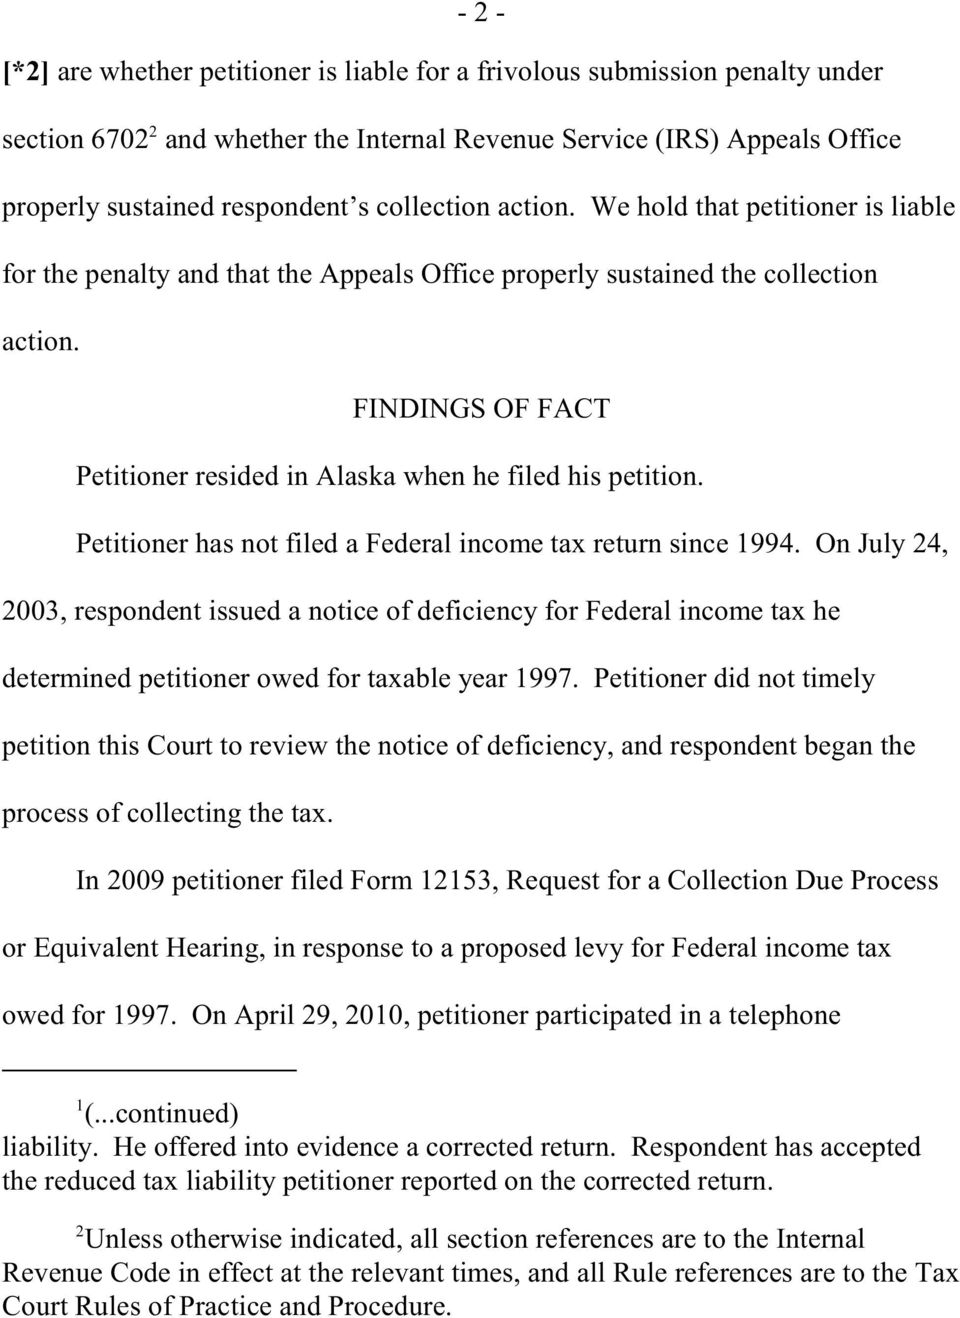 FINDINGS OF FACT Petitioner resided in Alaska when he filed his petition. Petitioner has not filed a Federal income tax return since 1994.